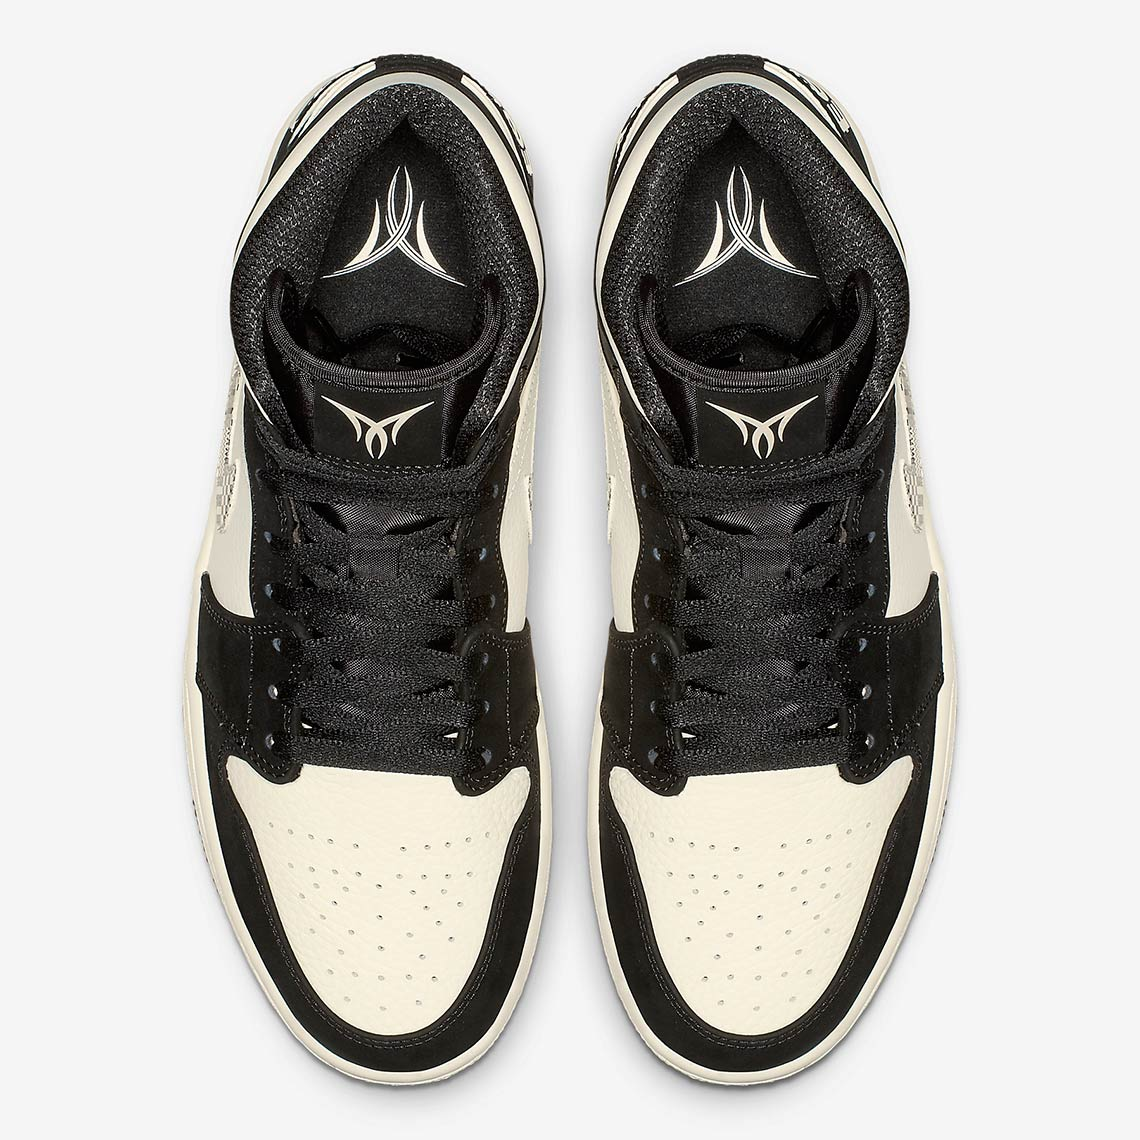 437fc7a84cf642 Jordan 1 Mid Equality 2019 852542-010 Release Date